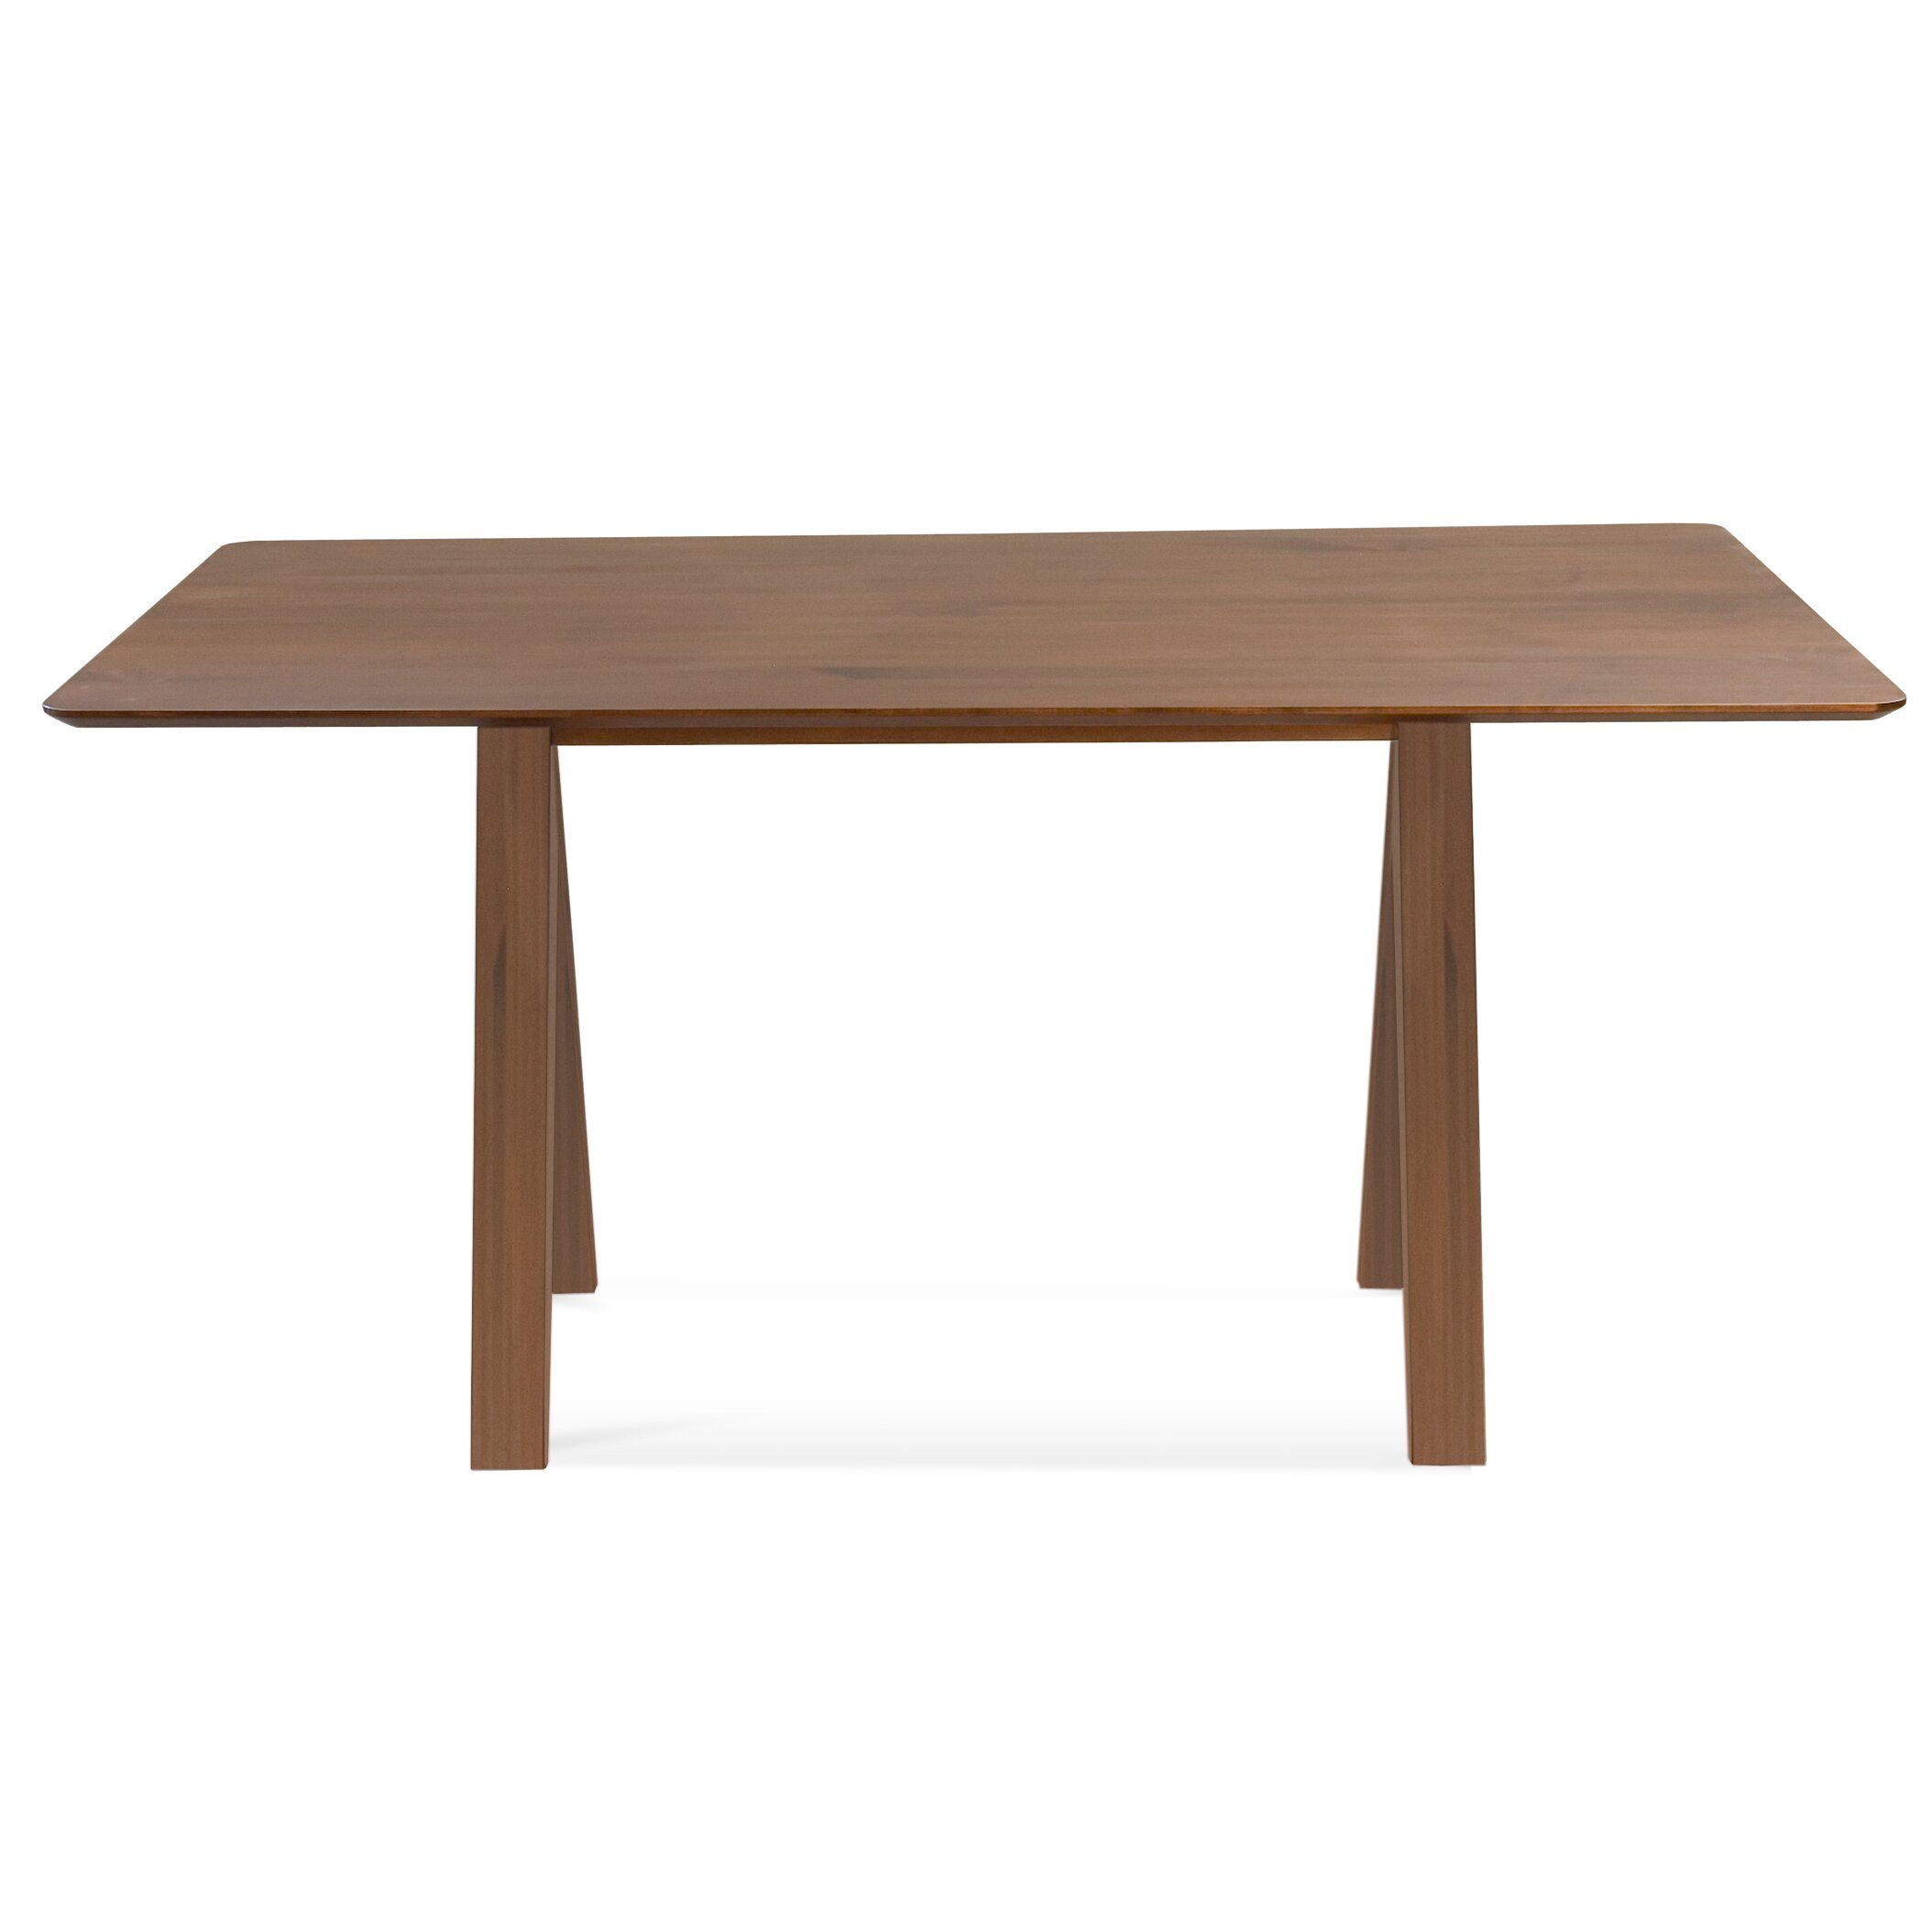 Saloom furniture soma dining table wayfair for Wayfair furniture dining tables